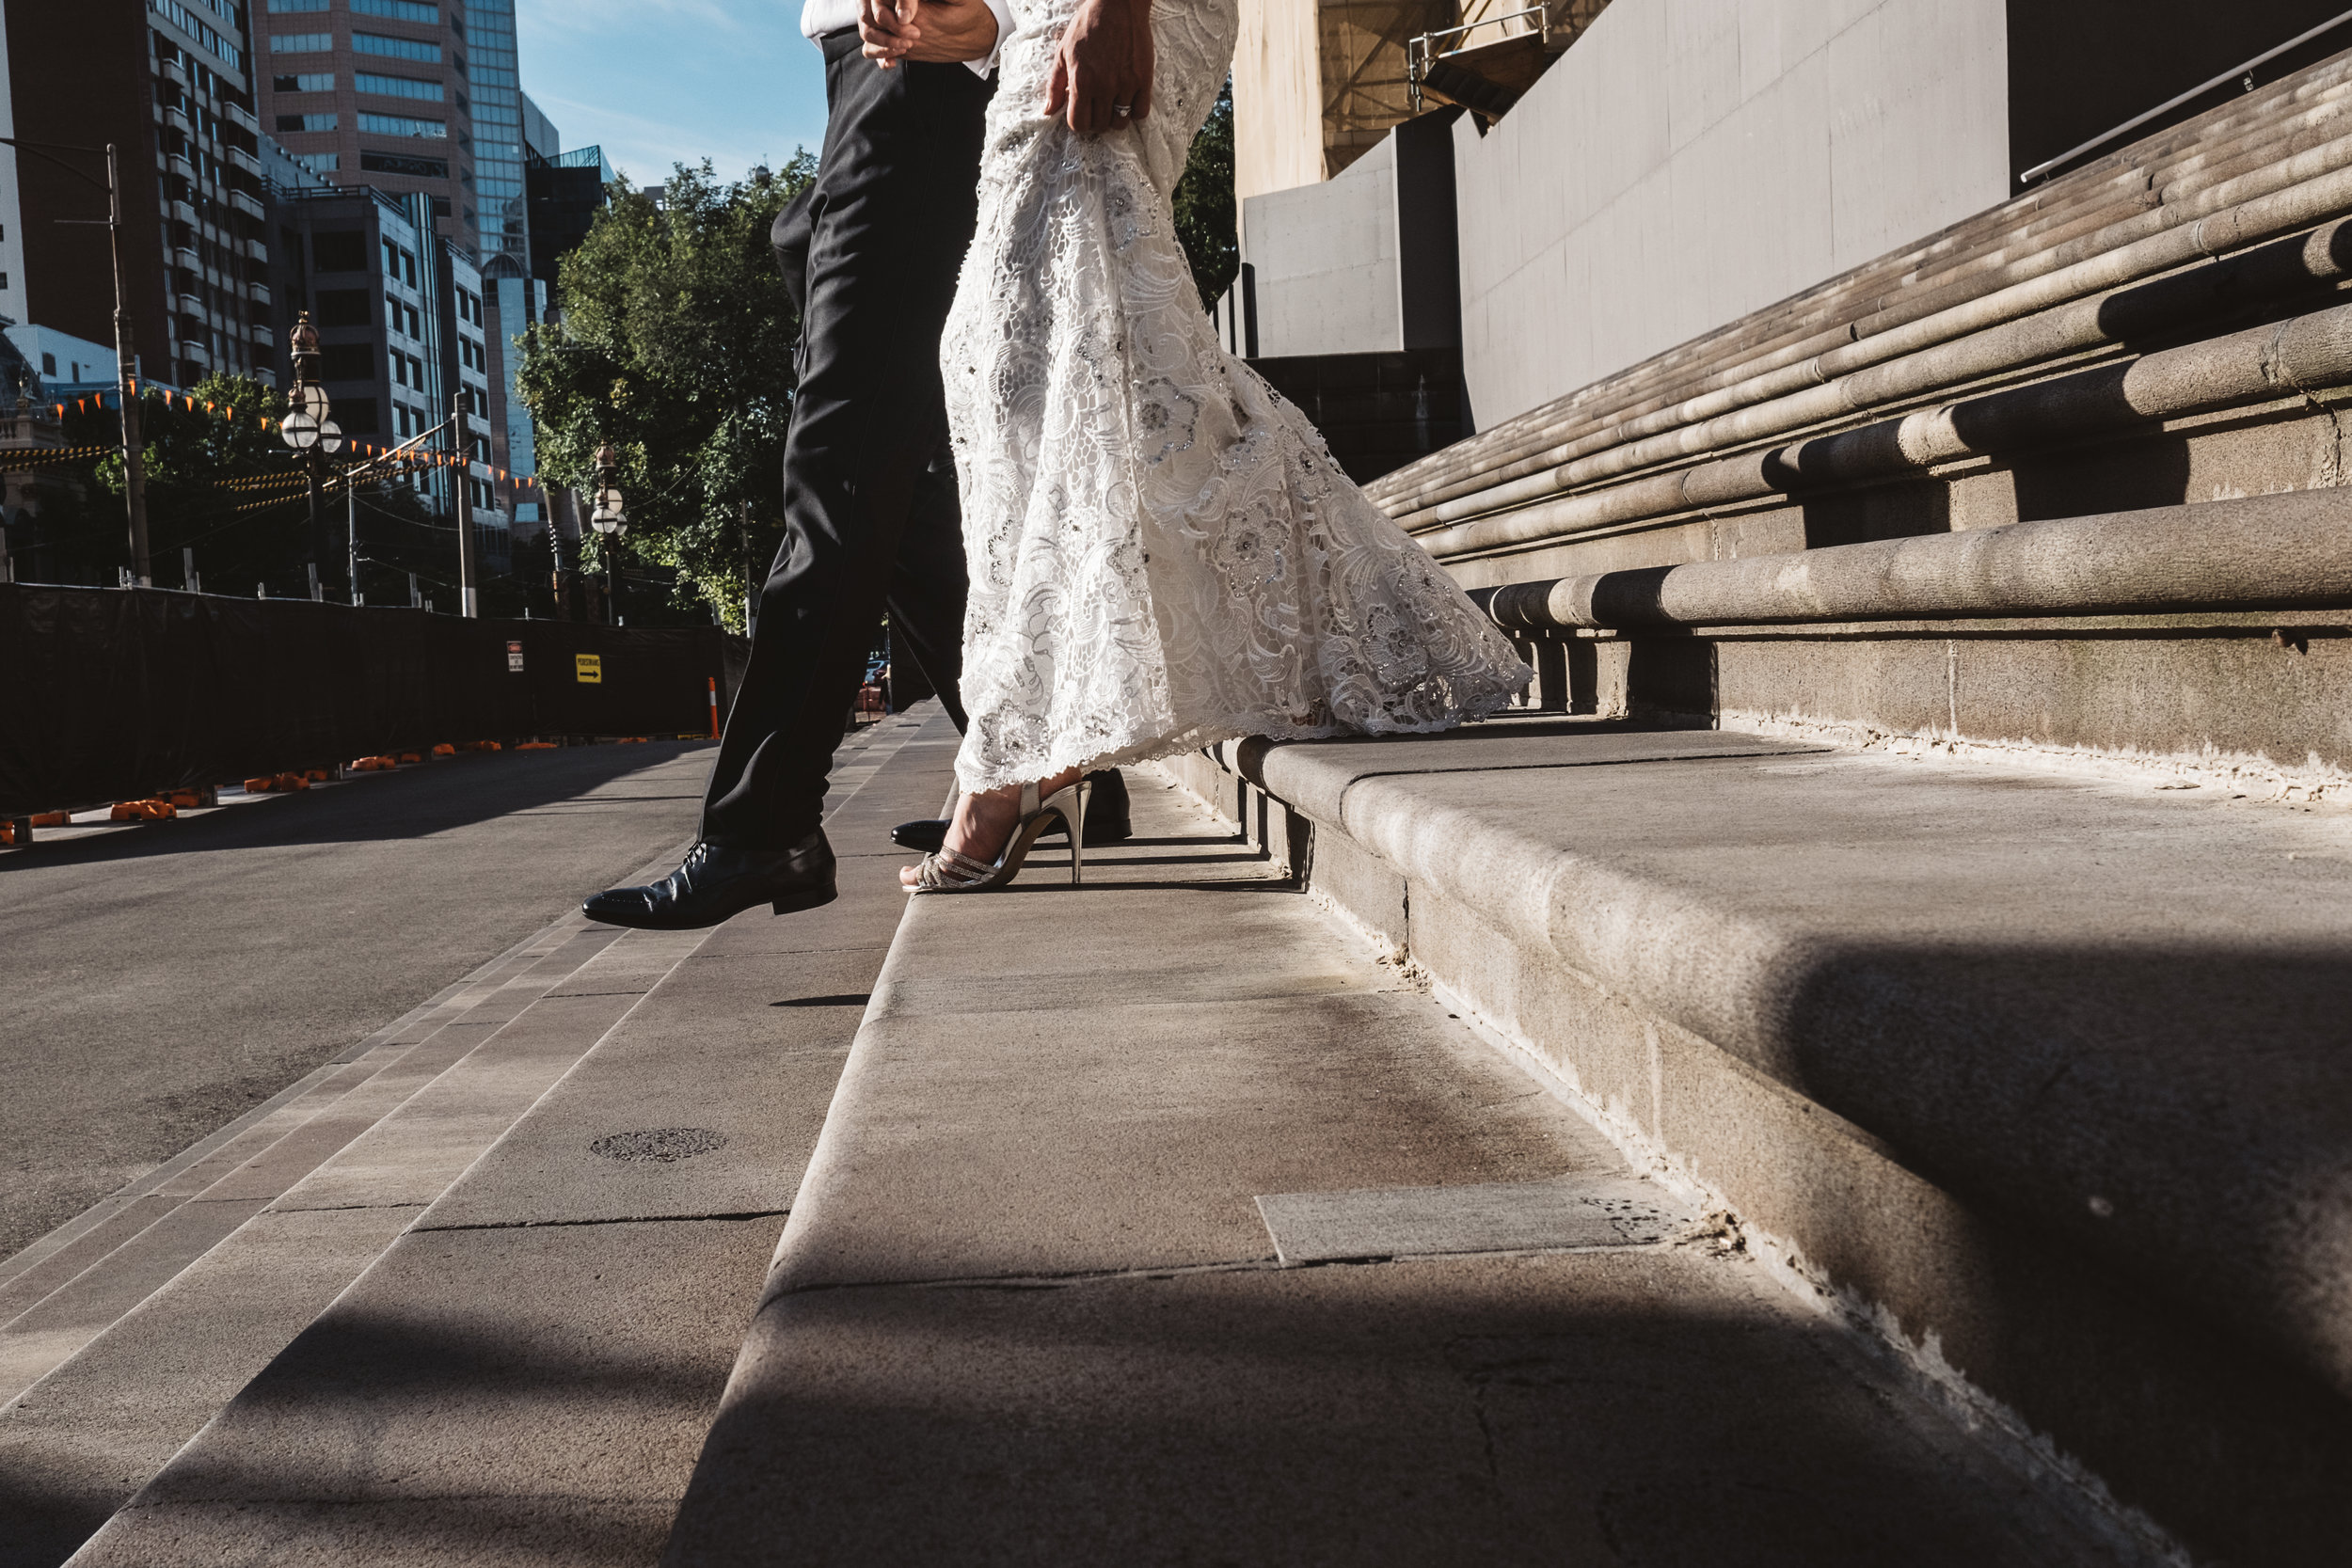 Trendy wedding venues in inner city melbourne and small weddings and elopements.